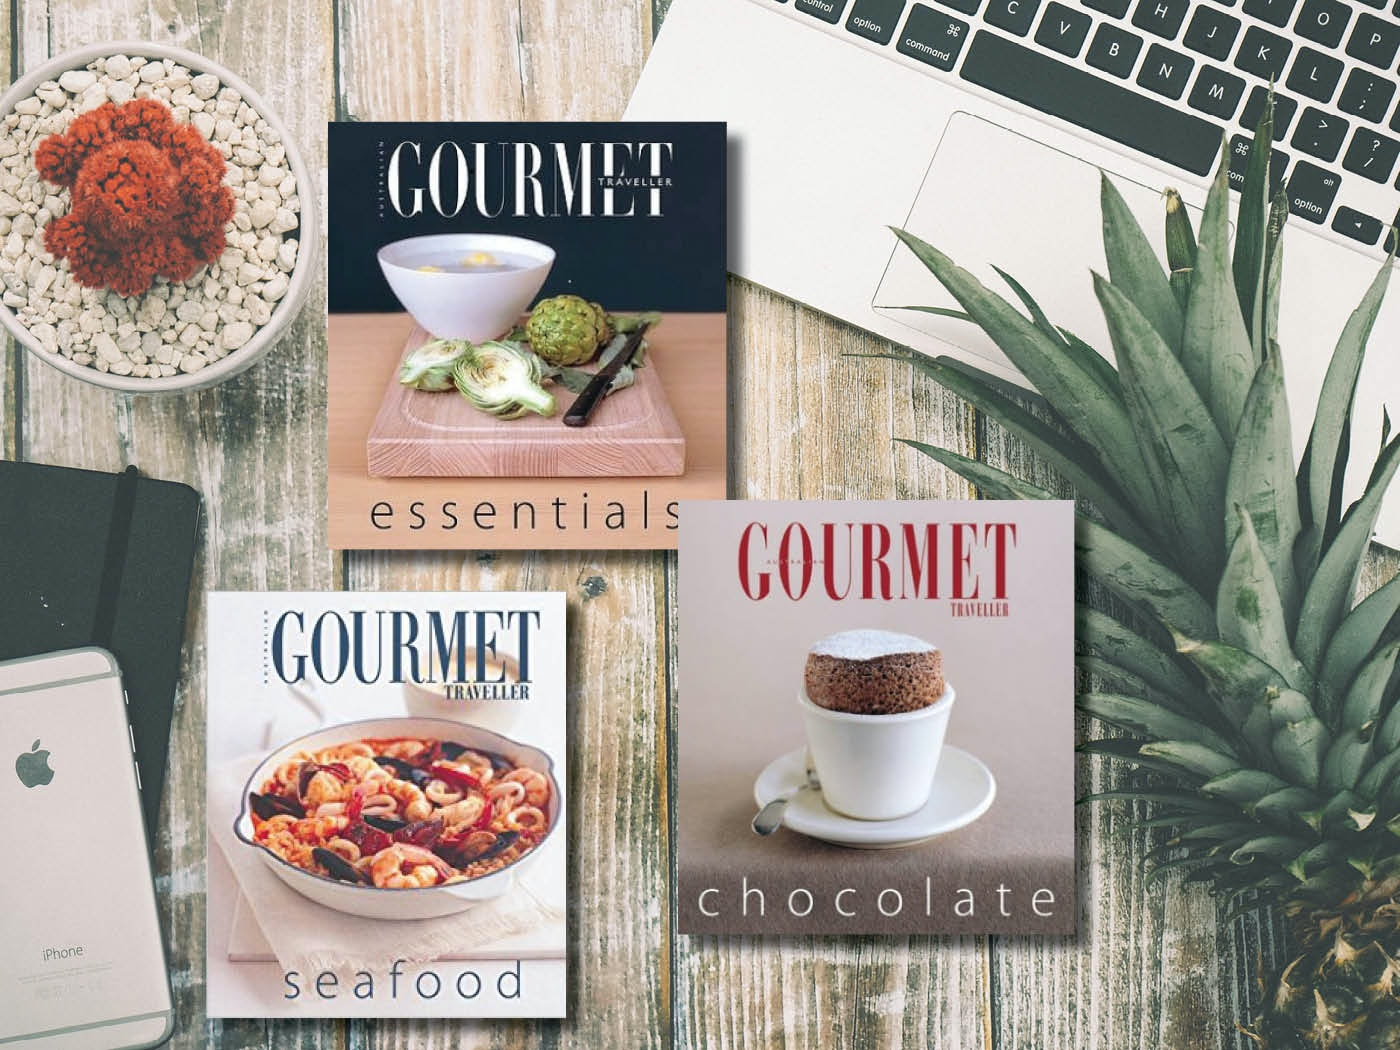 Sweepon gourmet traveller cook books